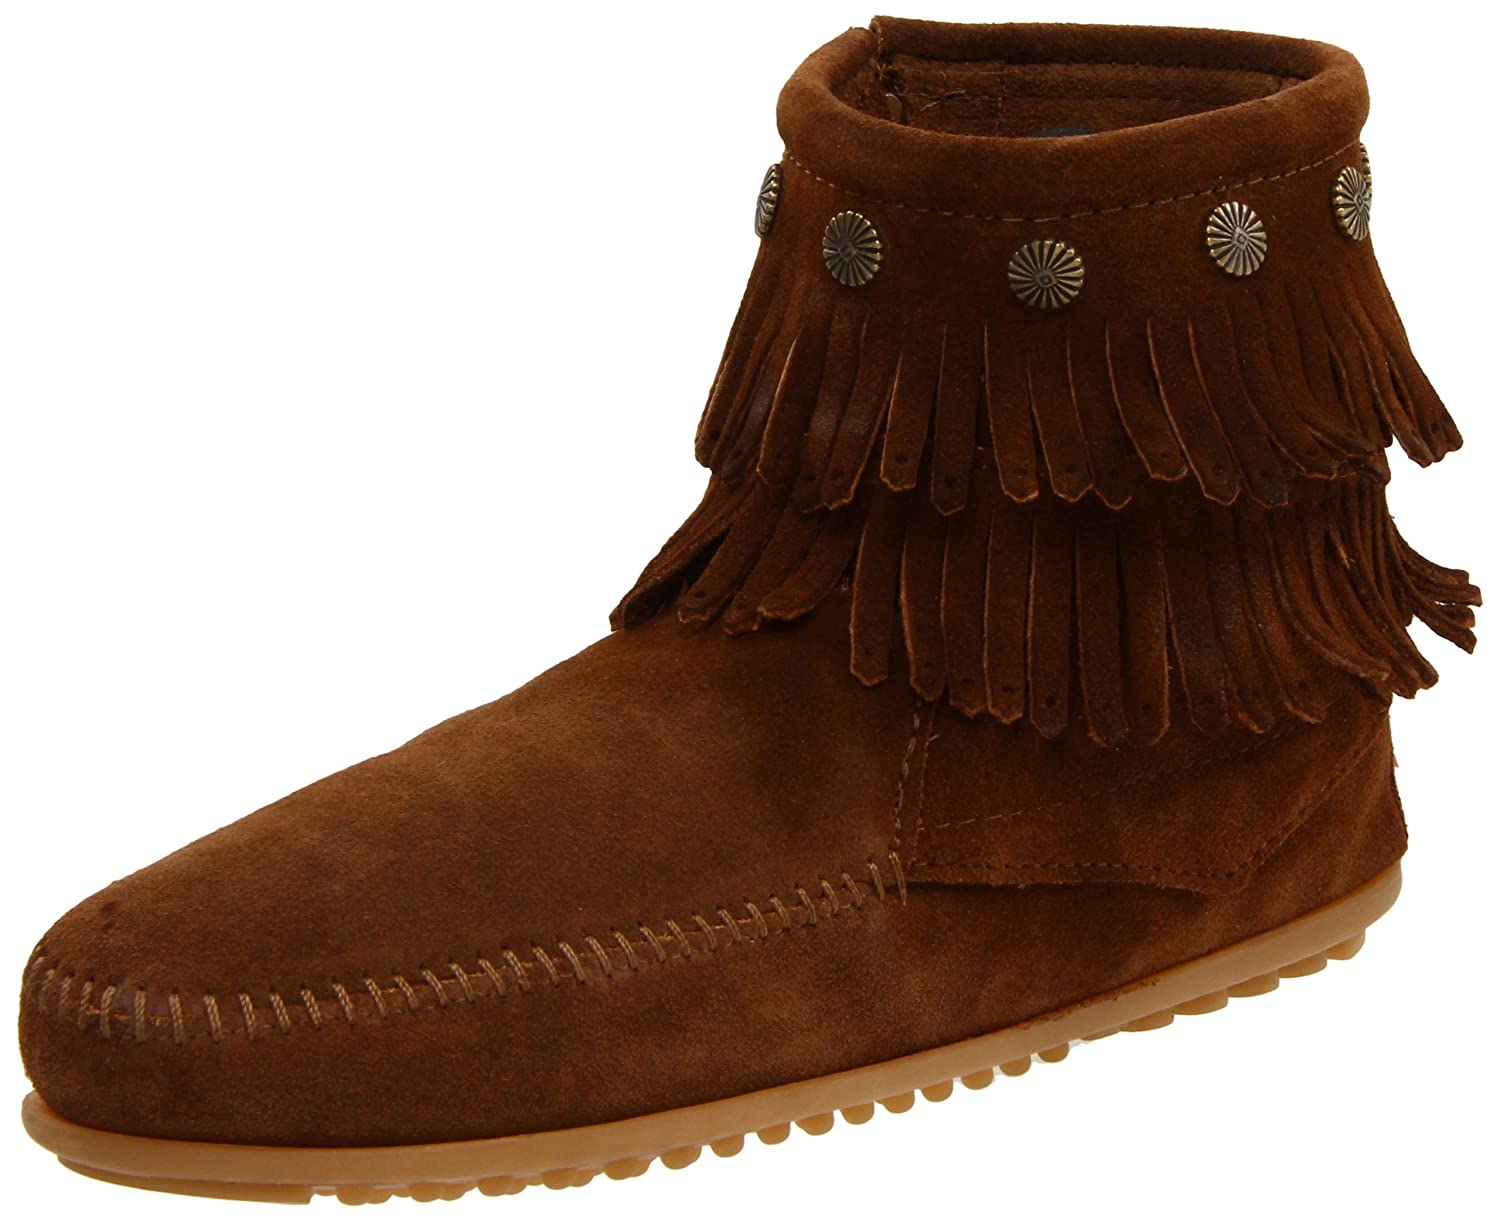 Minnetonka Women's Double-Fringe Side-Zip Boot B004UETWU6 9.5 B(M) US|Dusty